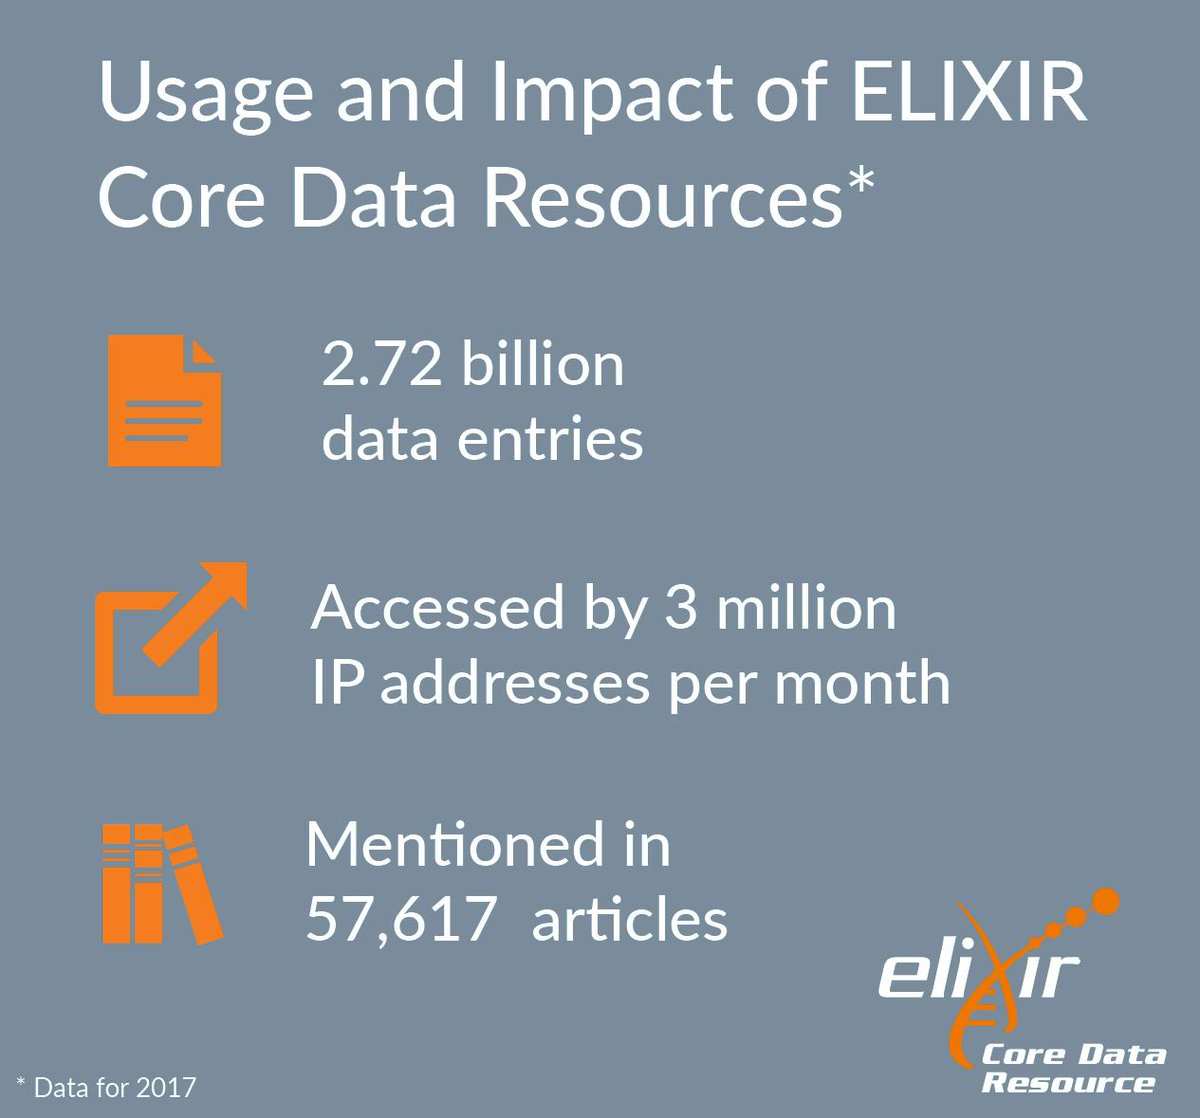 Impressive data on usage of ELIXIR Core Data Resources: over 2.7 billion entries accessed by 3 million unique IPs. ELIXIR Data Platform explored the usage and impact of the ELIXIR Core Data Resources, the results are available in pre-print http://bit.ly/2GDcOc3